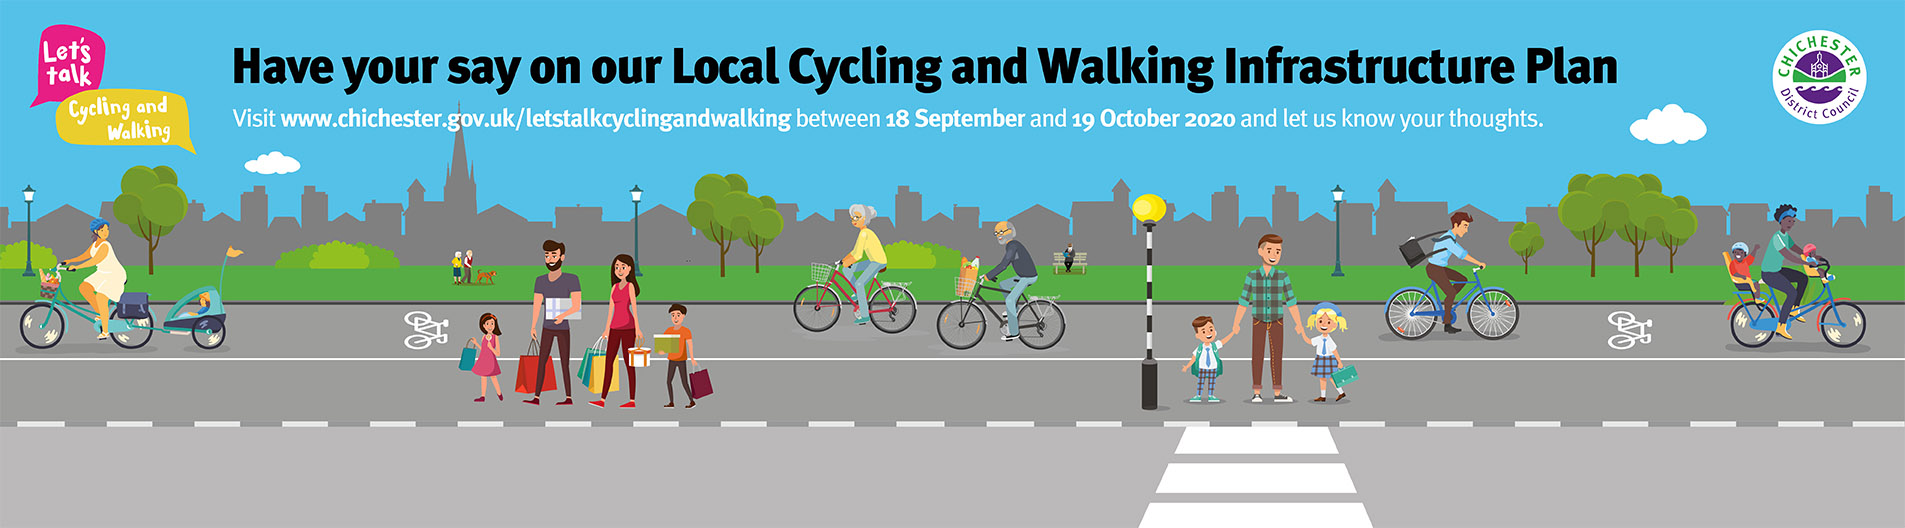 Let's Talk: Cycling and Walking campaign